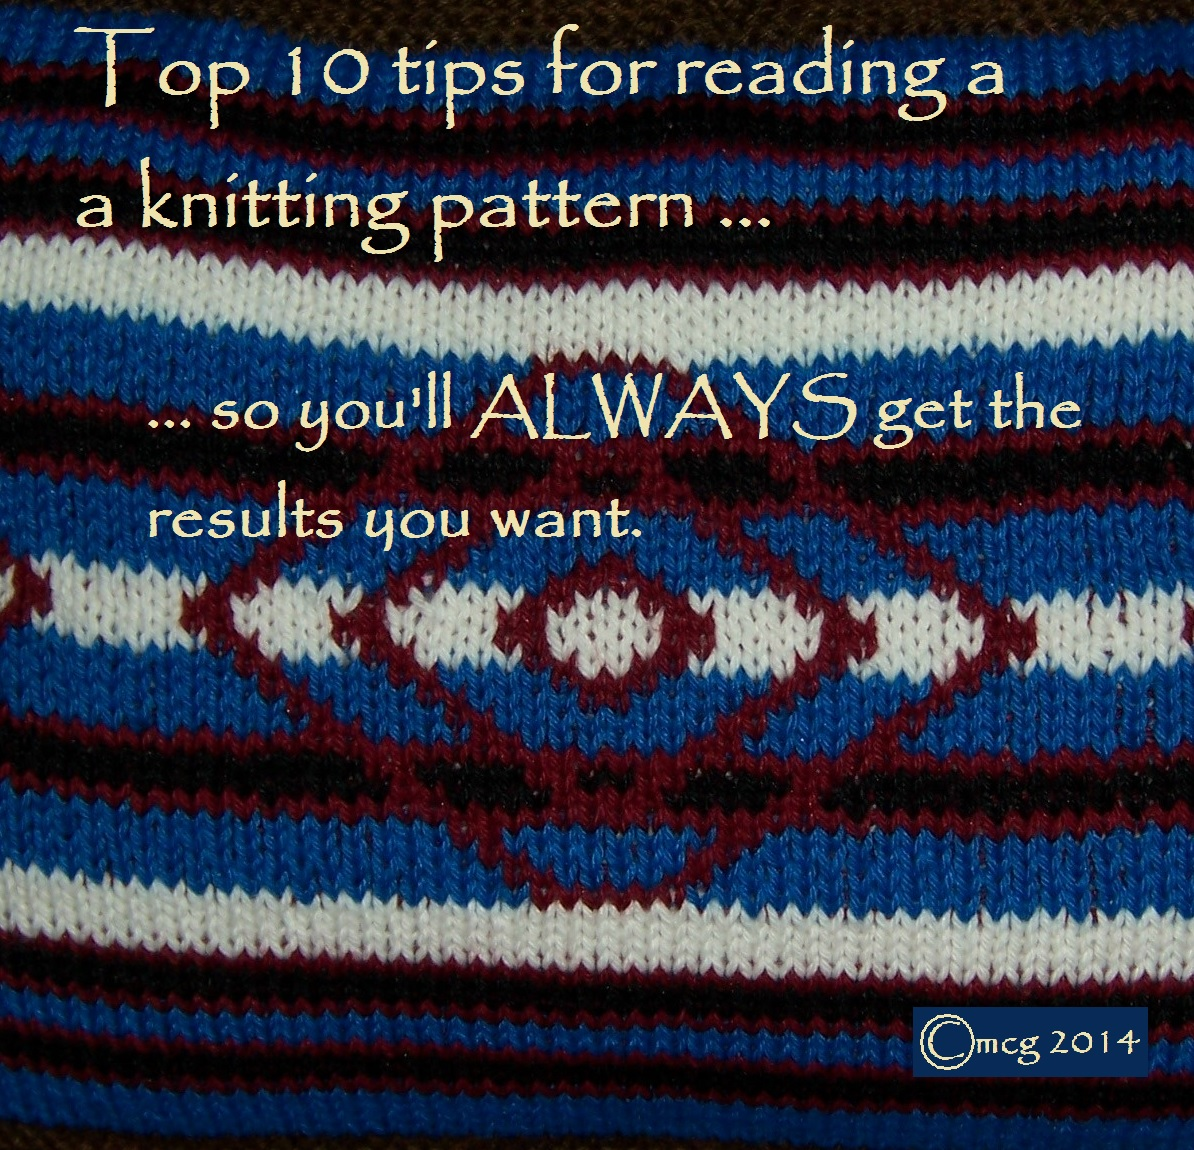 How To Read Knit Patterns : Tips Tuesday: How to read a knitting pattern ? so you ll always get the resul...